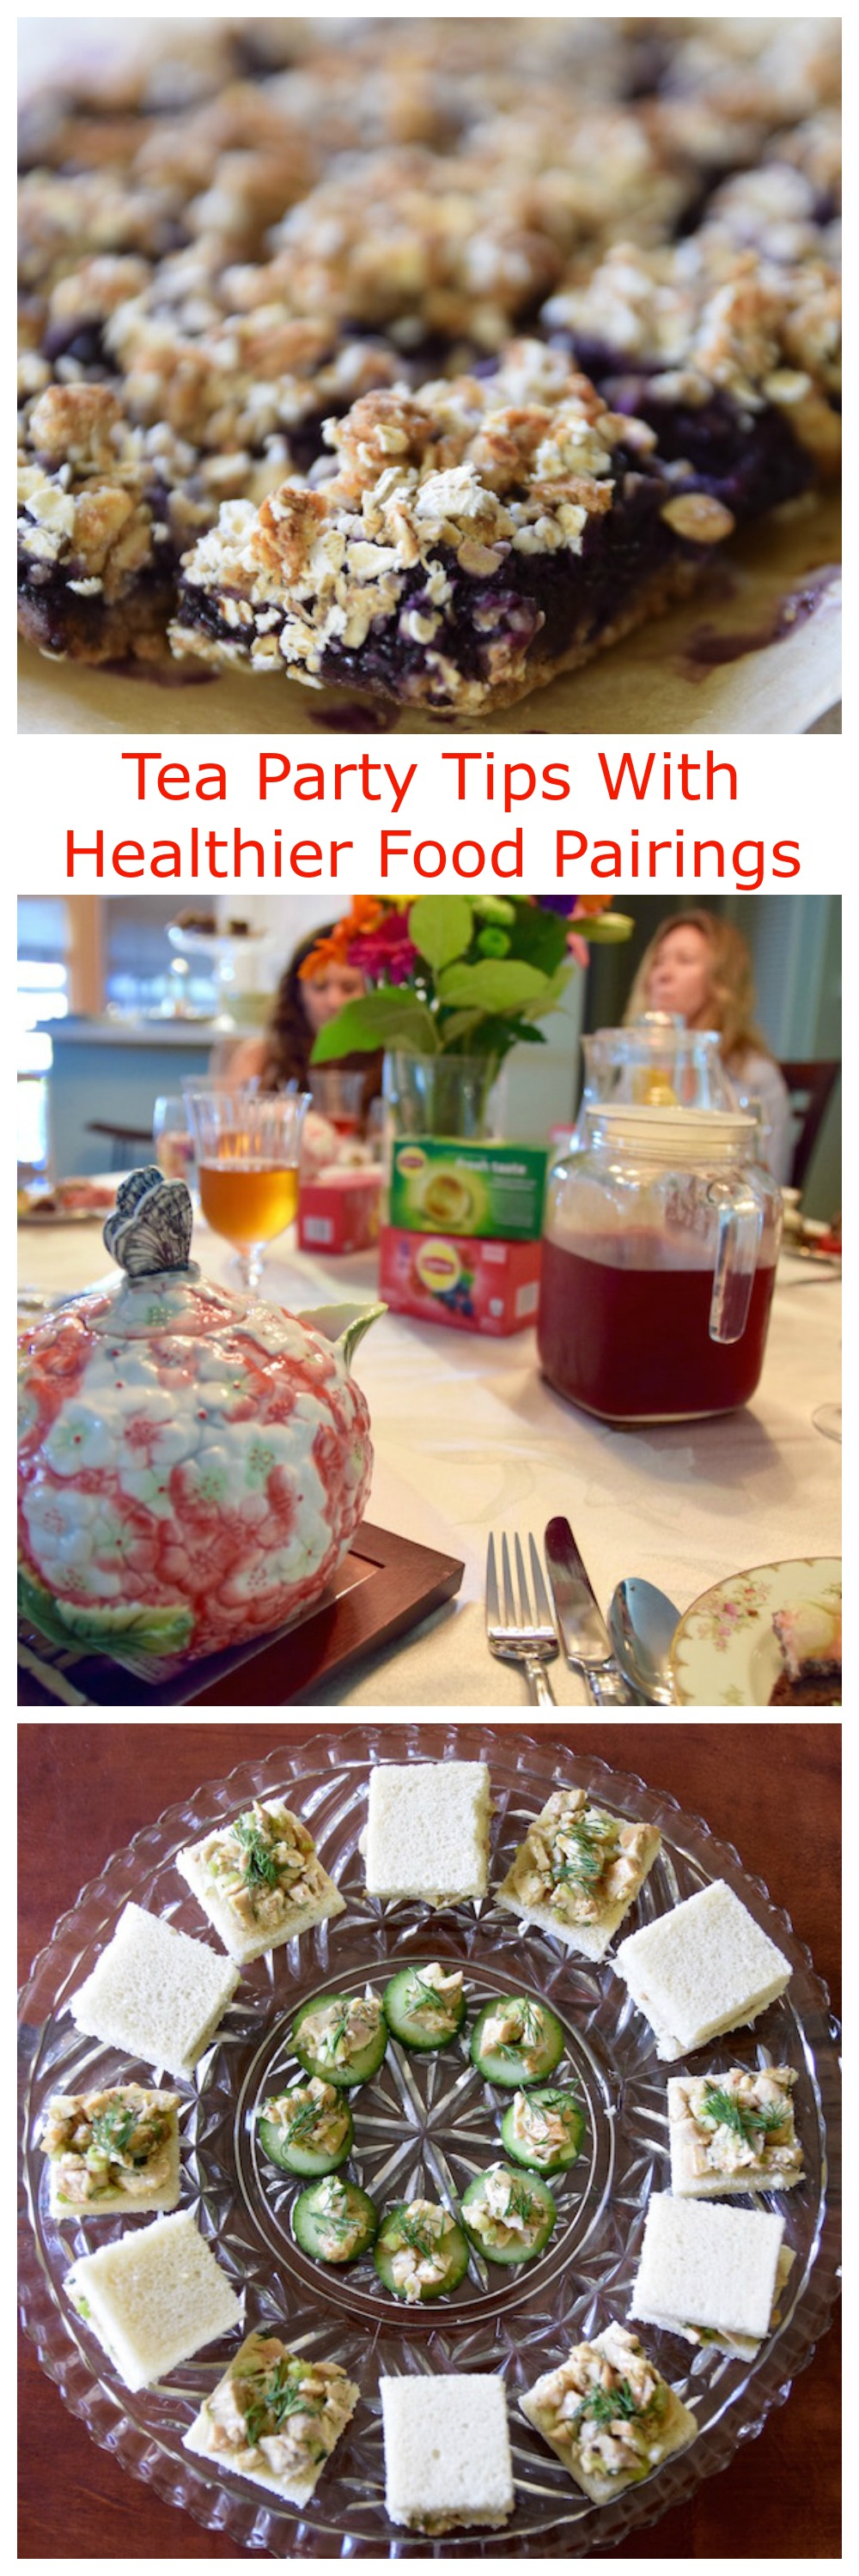 Tea Party Tips with Healthier Food Pairings | TastingPage.com